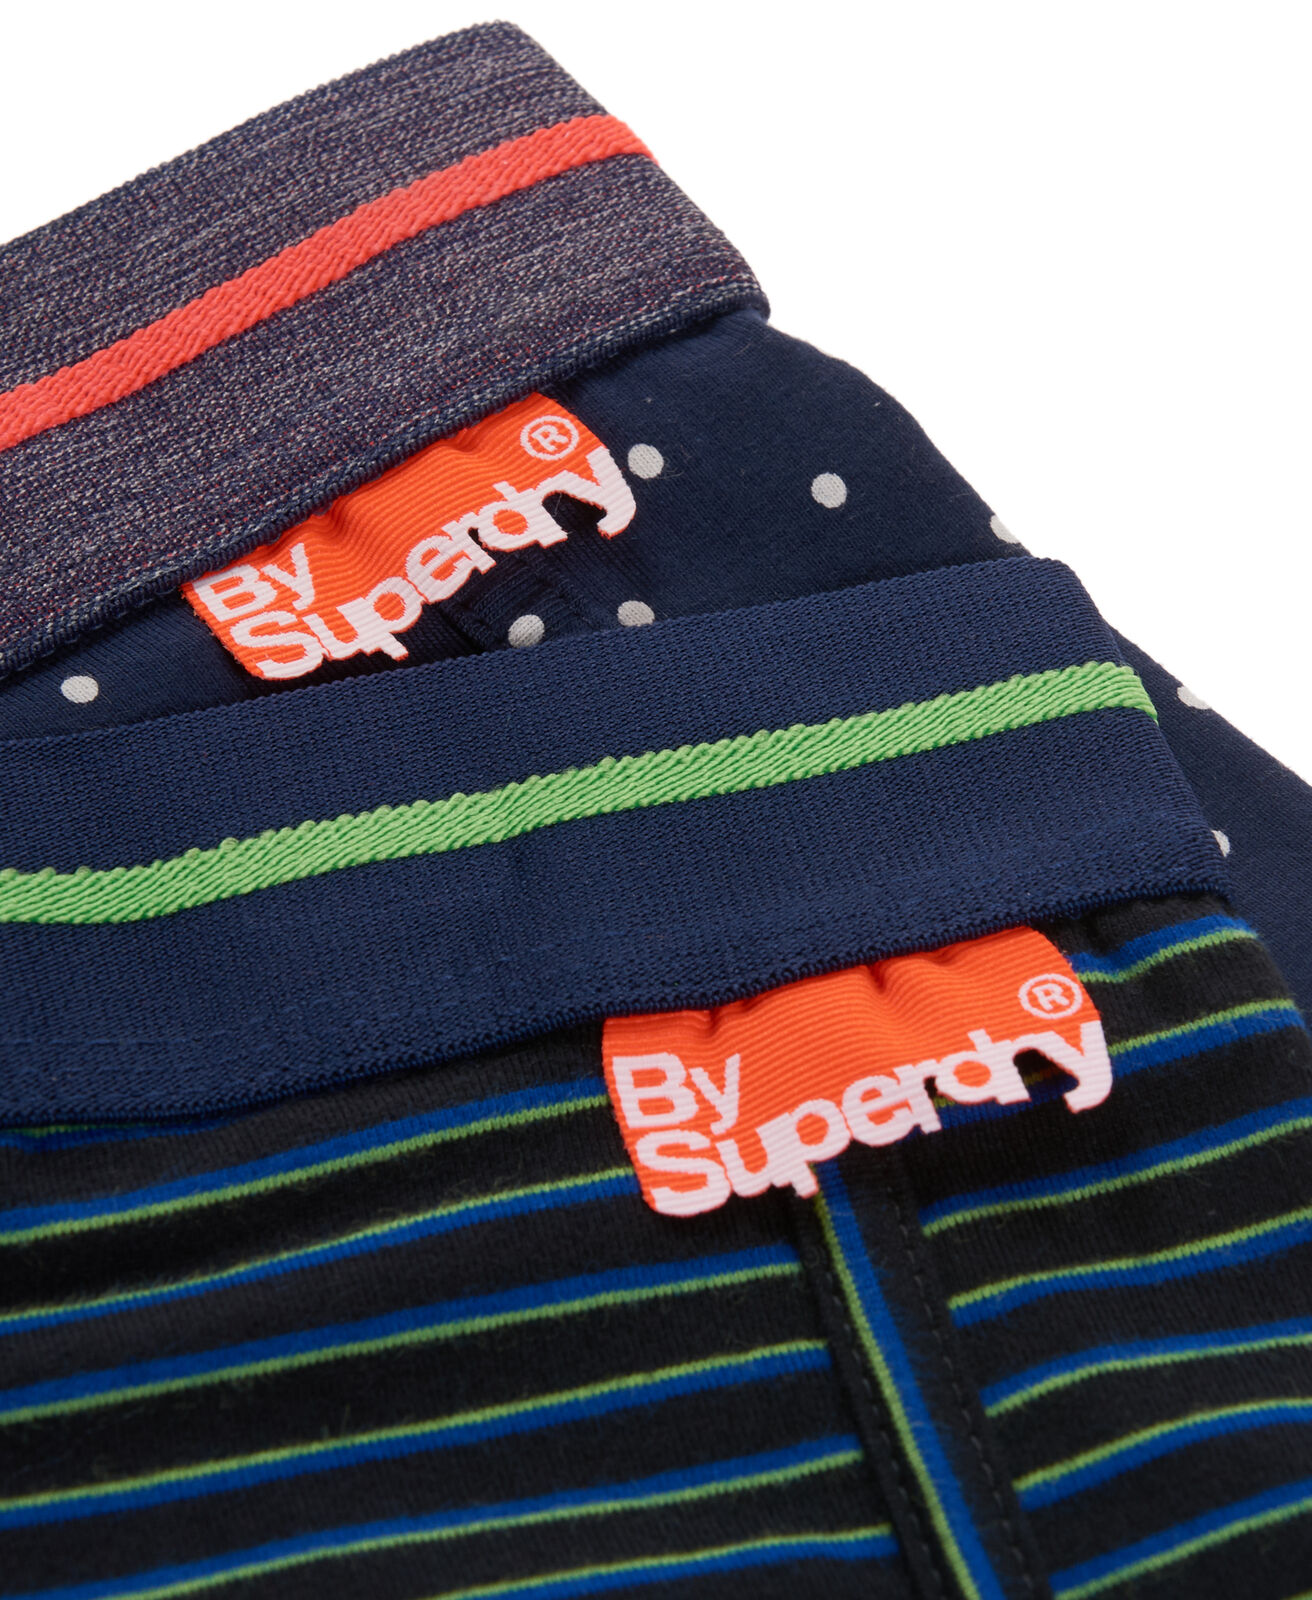 Mens-Superdry-Sport-Boxers-Double-Pack-Newport-Stripe-Green thumbnail 10